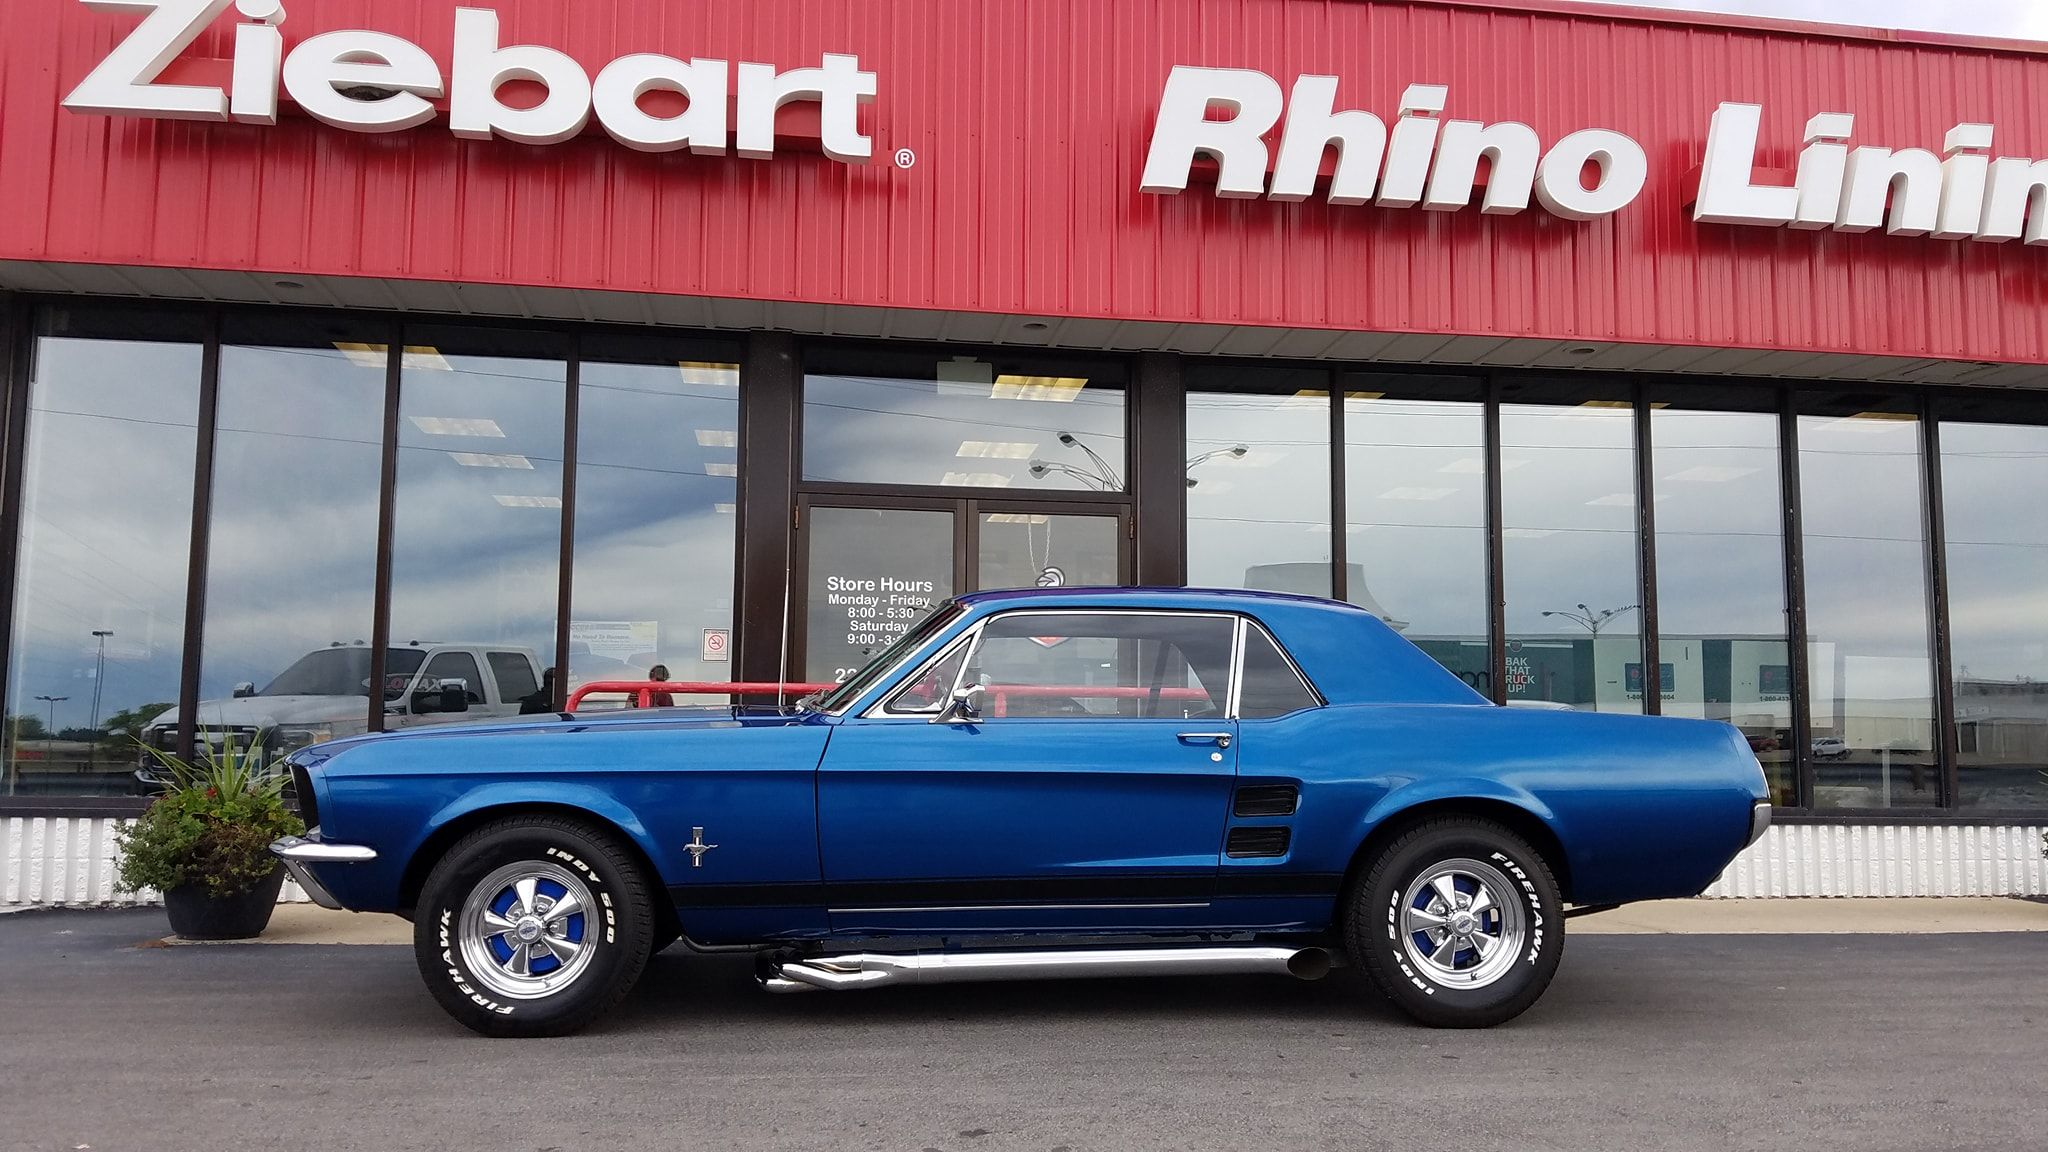 1967 Ford Mustang Mustang, Spray on bedliner, Paint